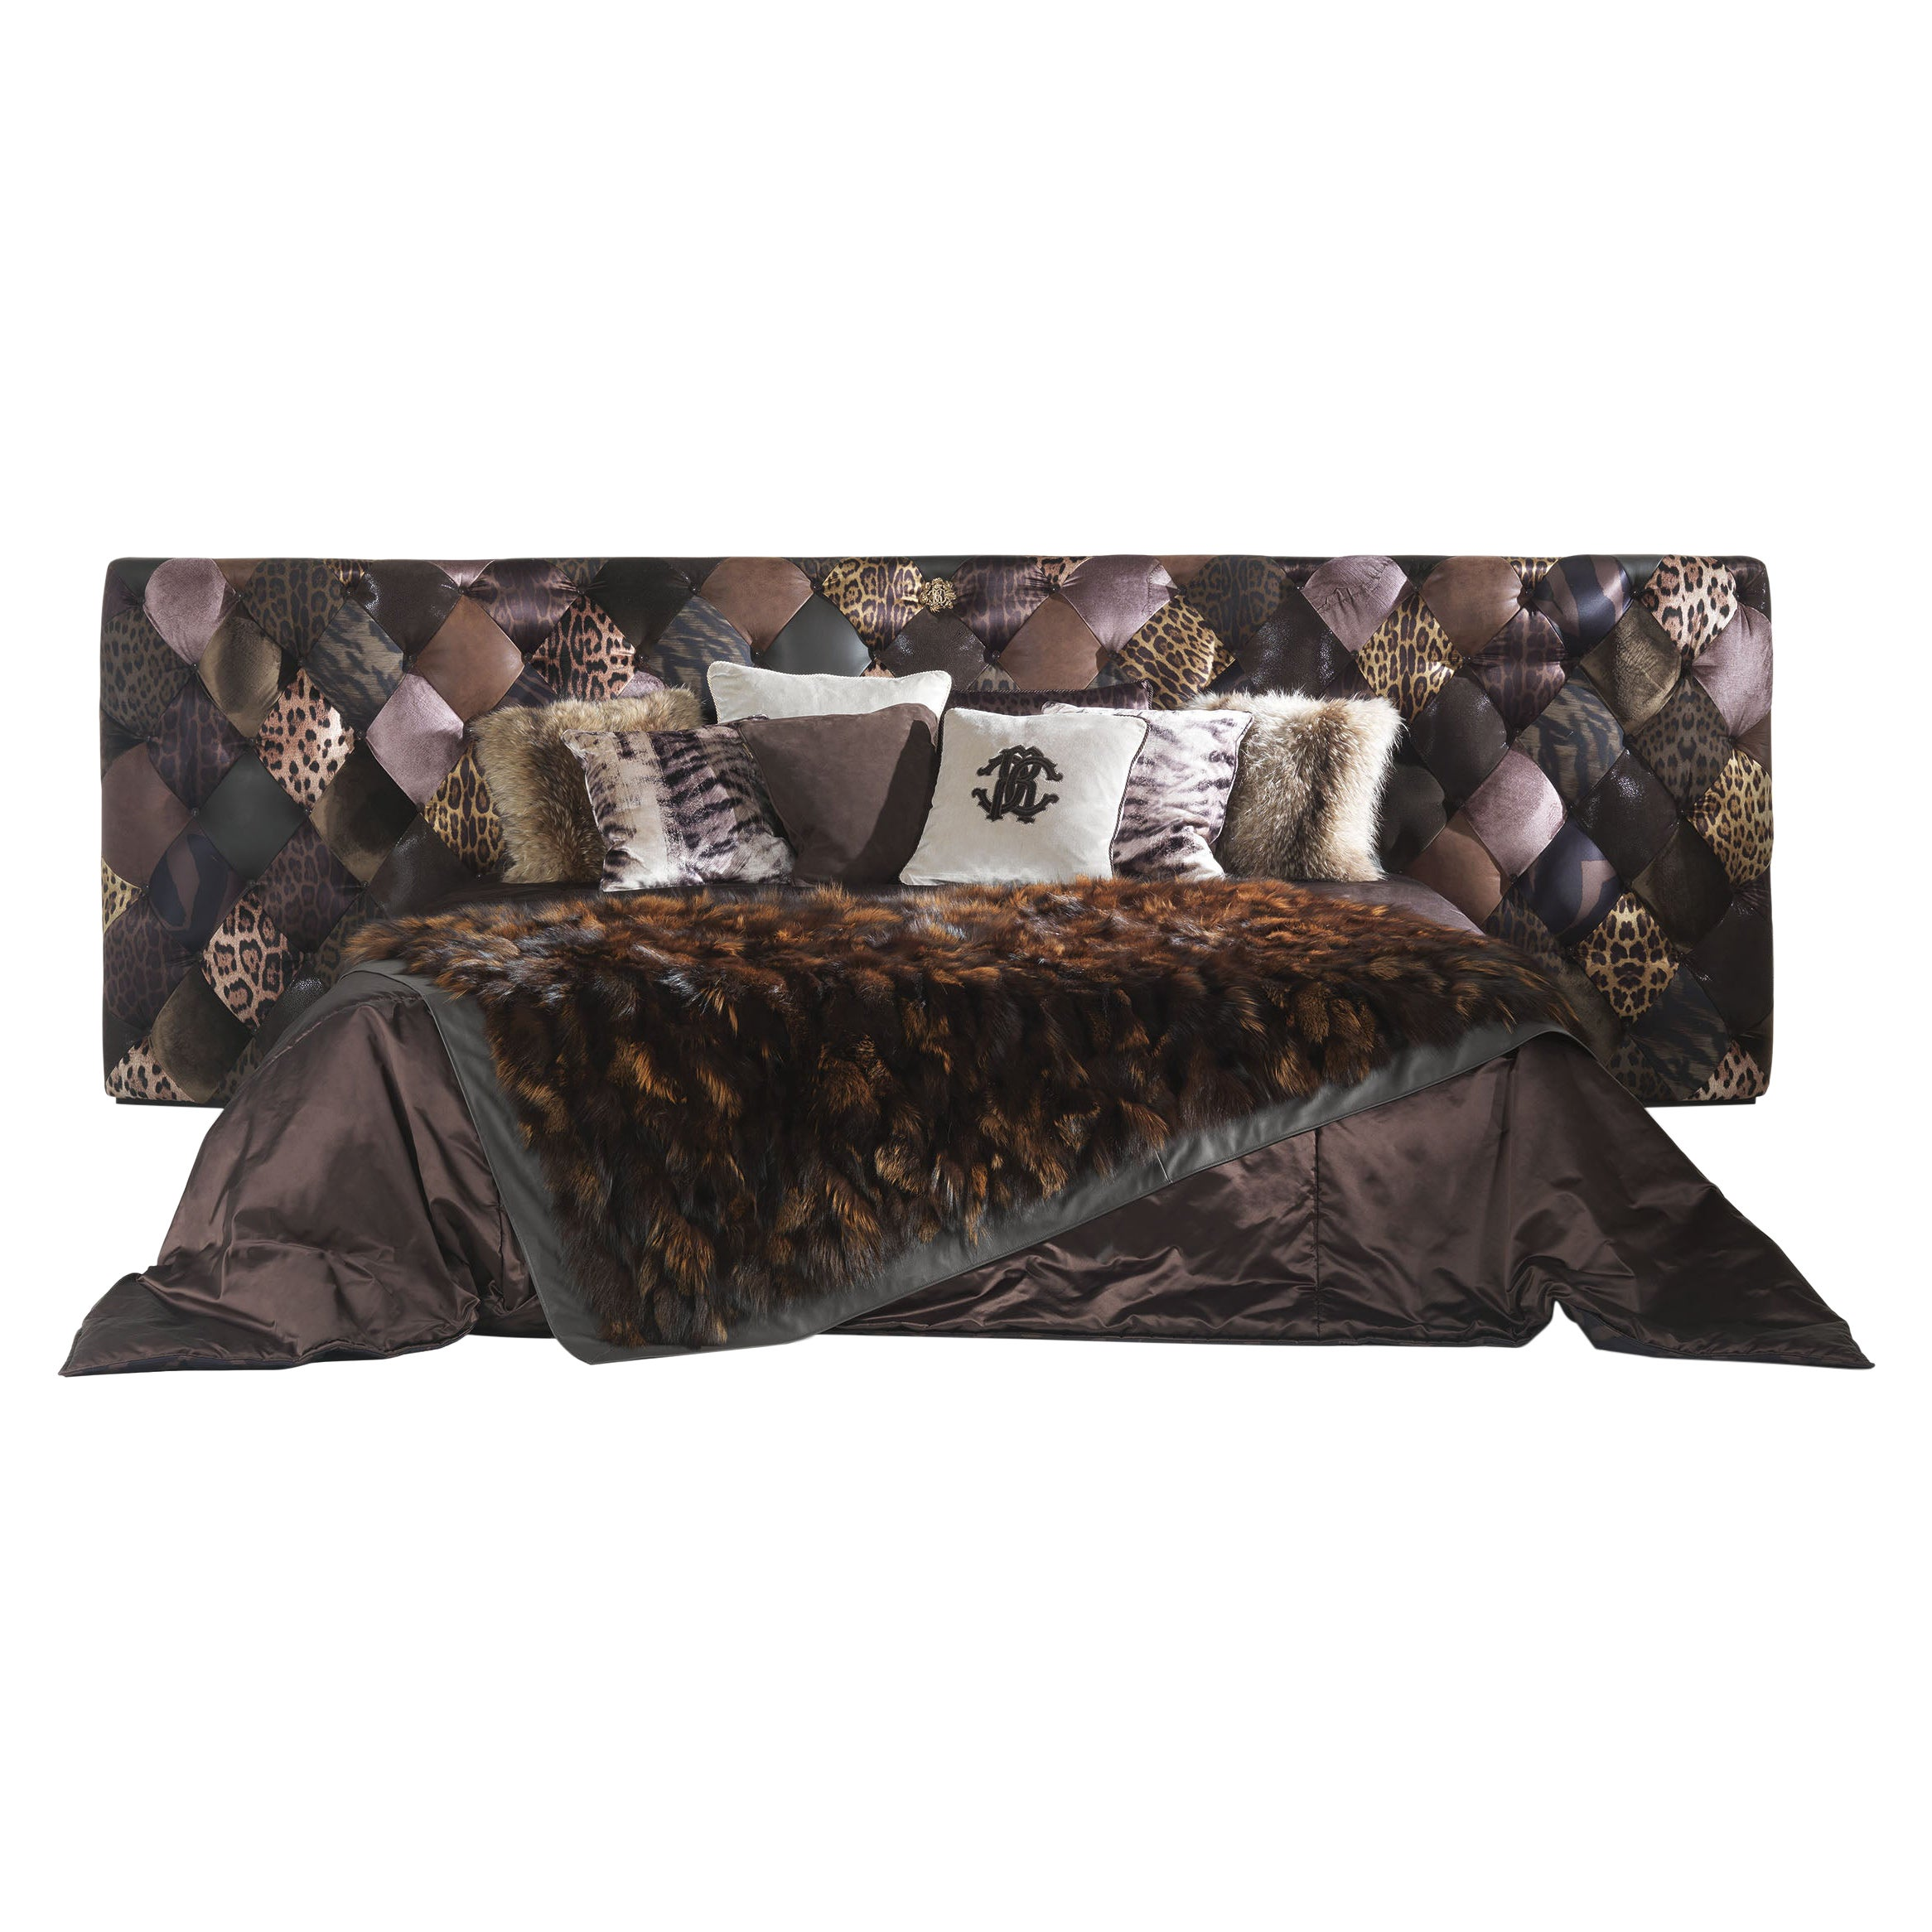 Limbo Bed in Dark Patchwork Pattern by Roberto Cavalli Home Interiors